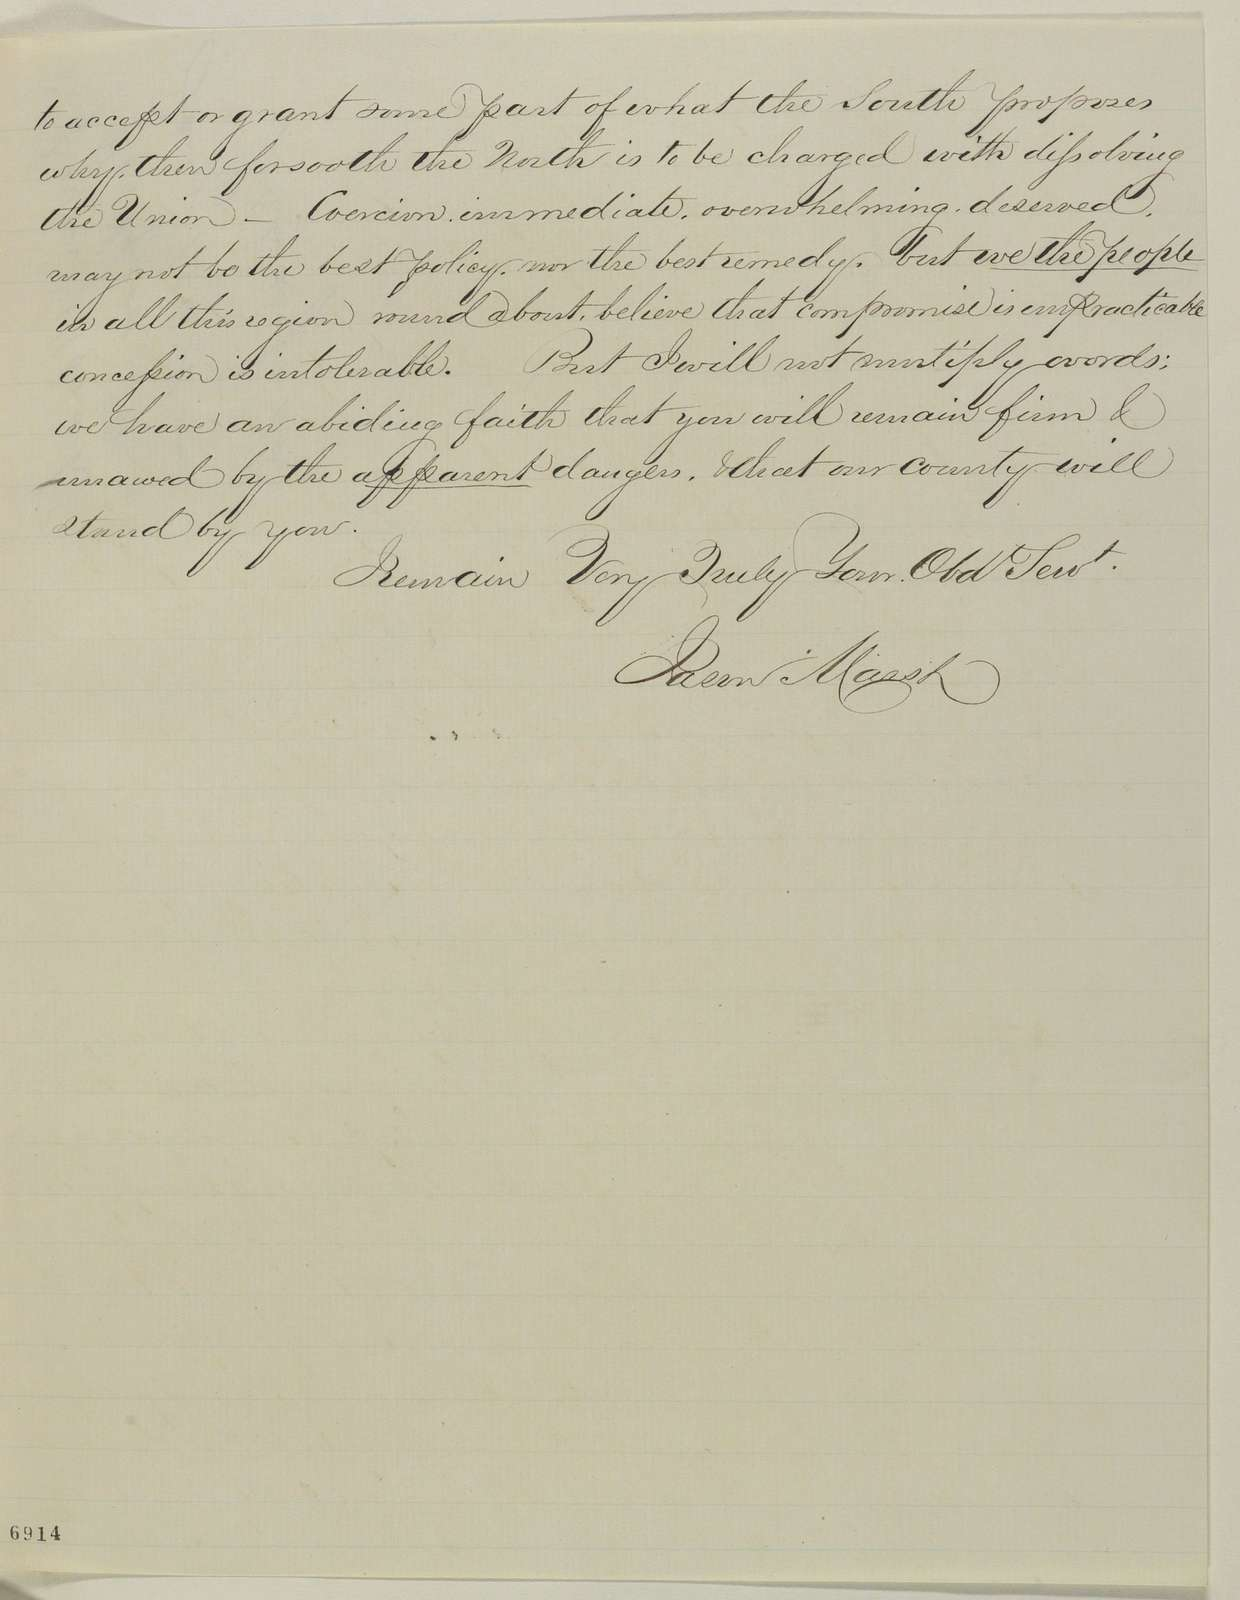 Abraham Lincoln papers: Series 1. General Correspondence. 1833-1916: Jason Marsh to Abraham Lincoln, Wednesday, January 30, 1861 (Recommends Judd for cabinet)